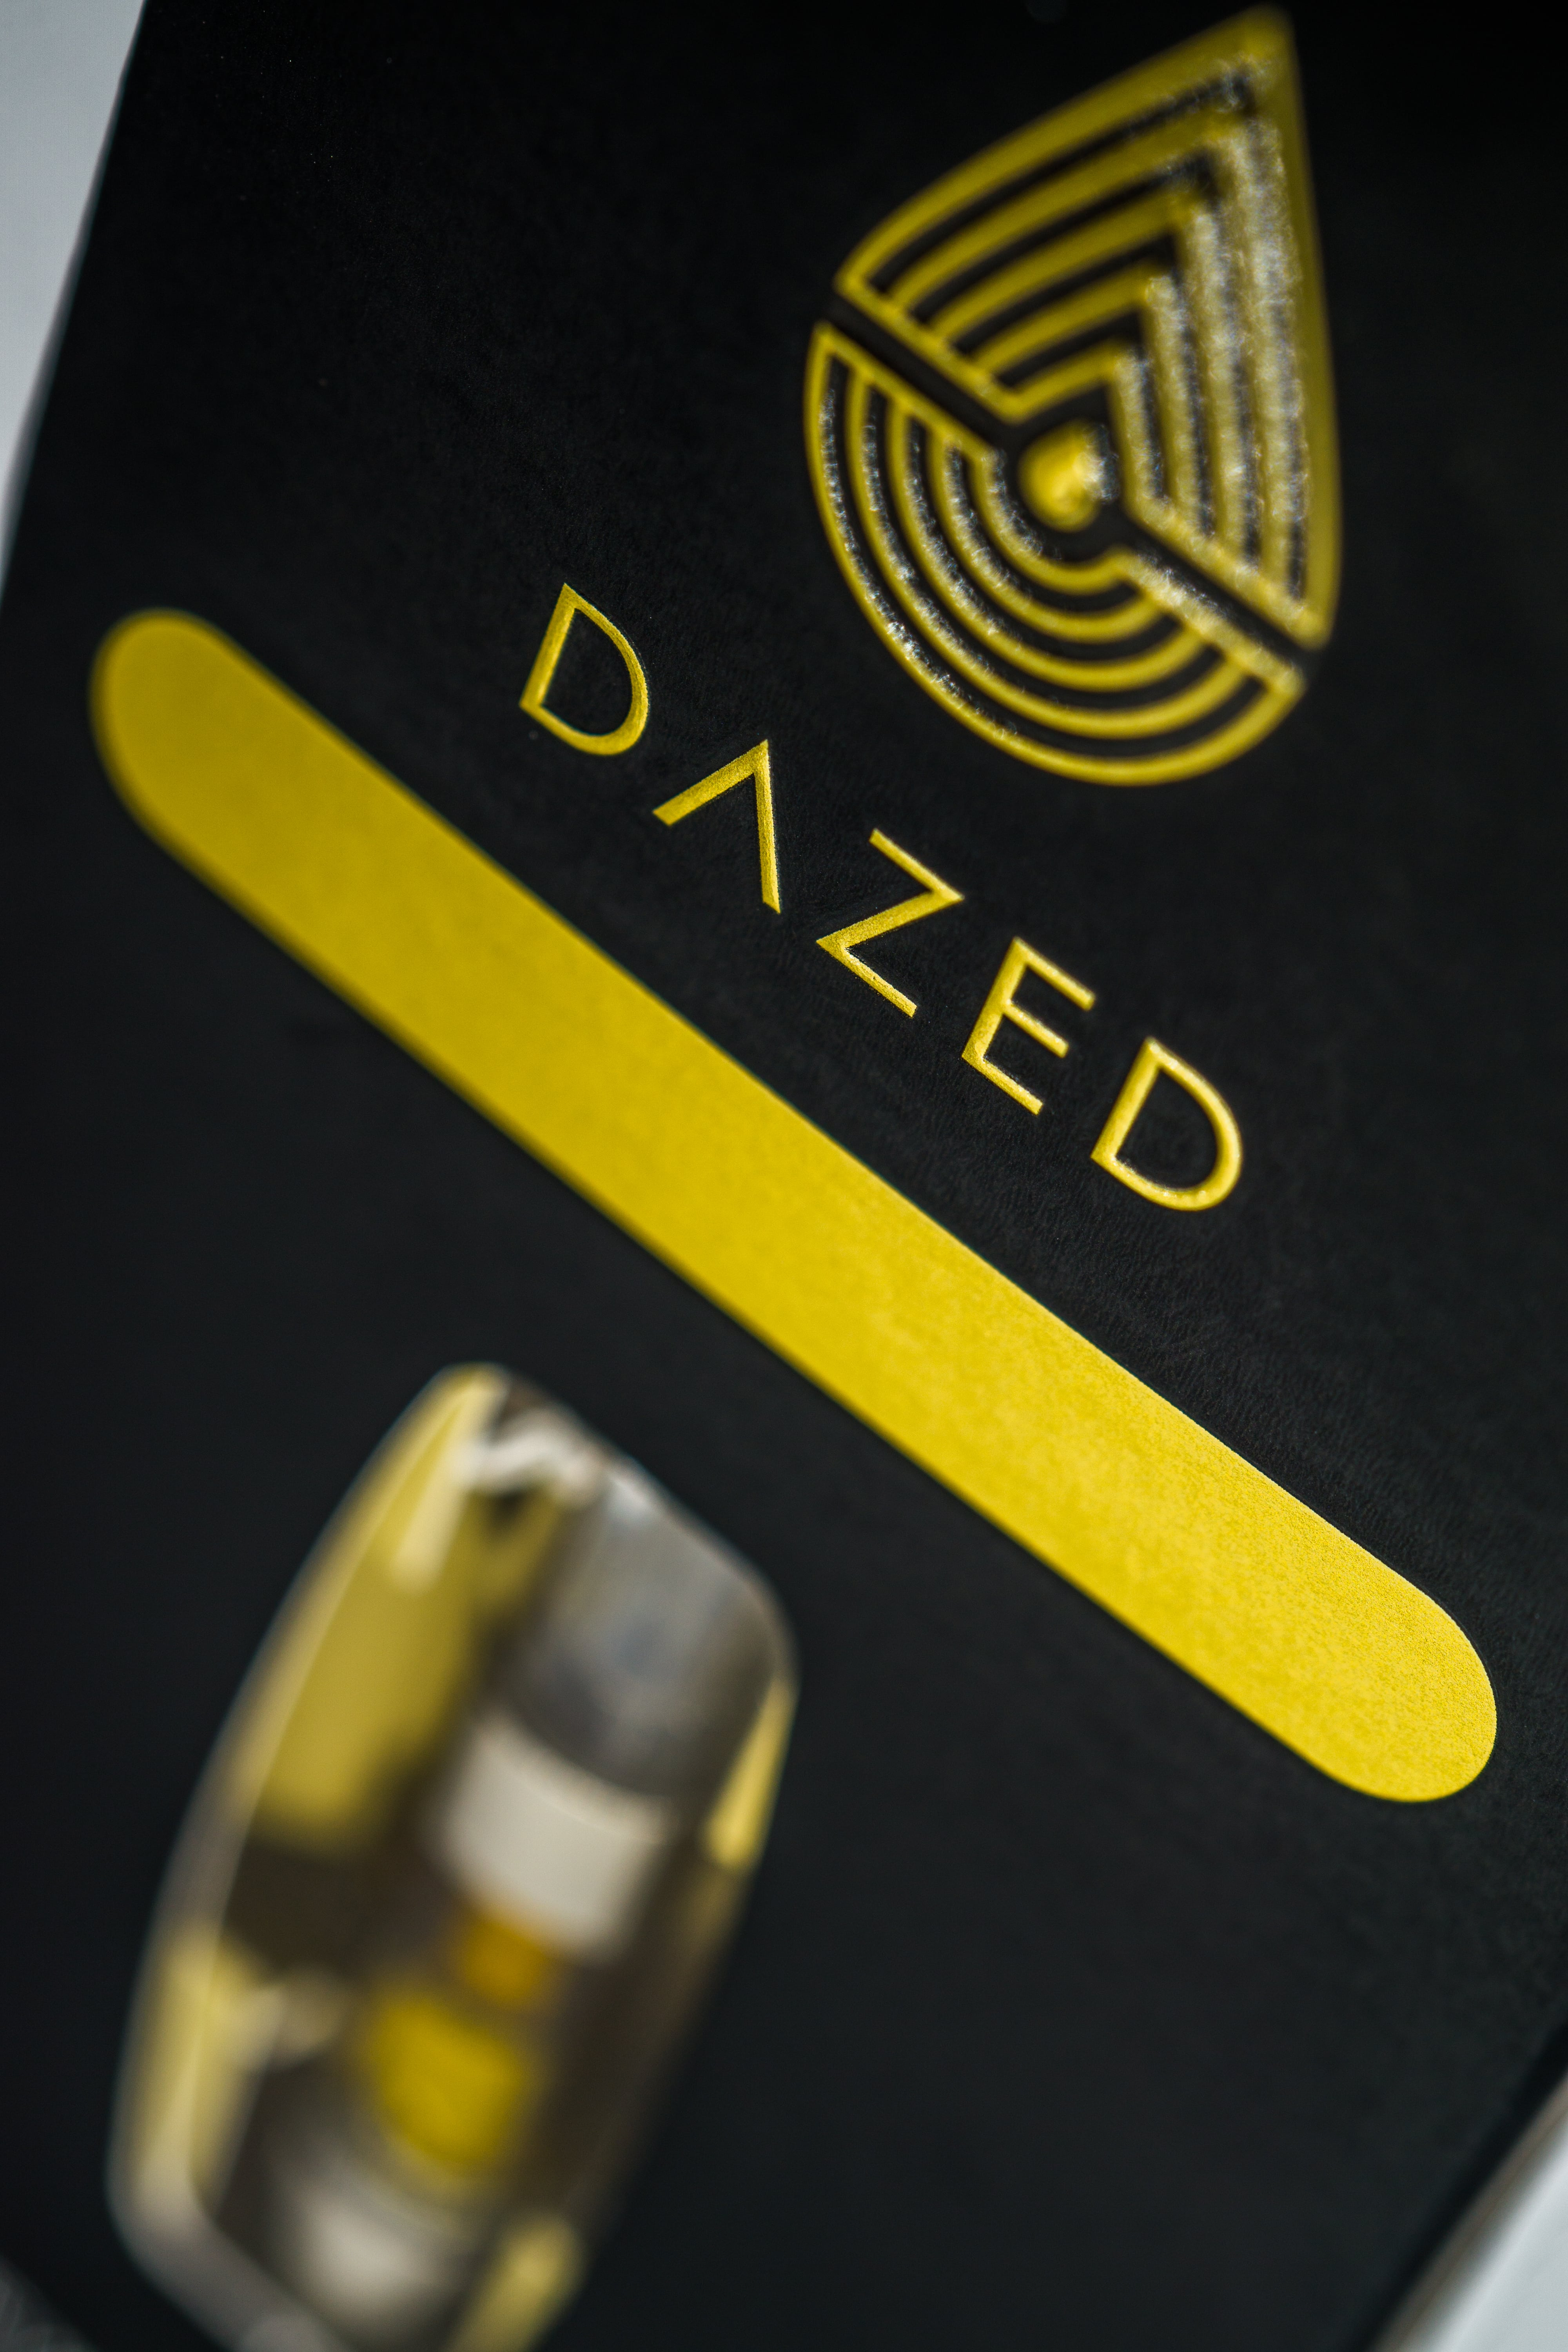 Dazed concentrate packaging